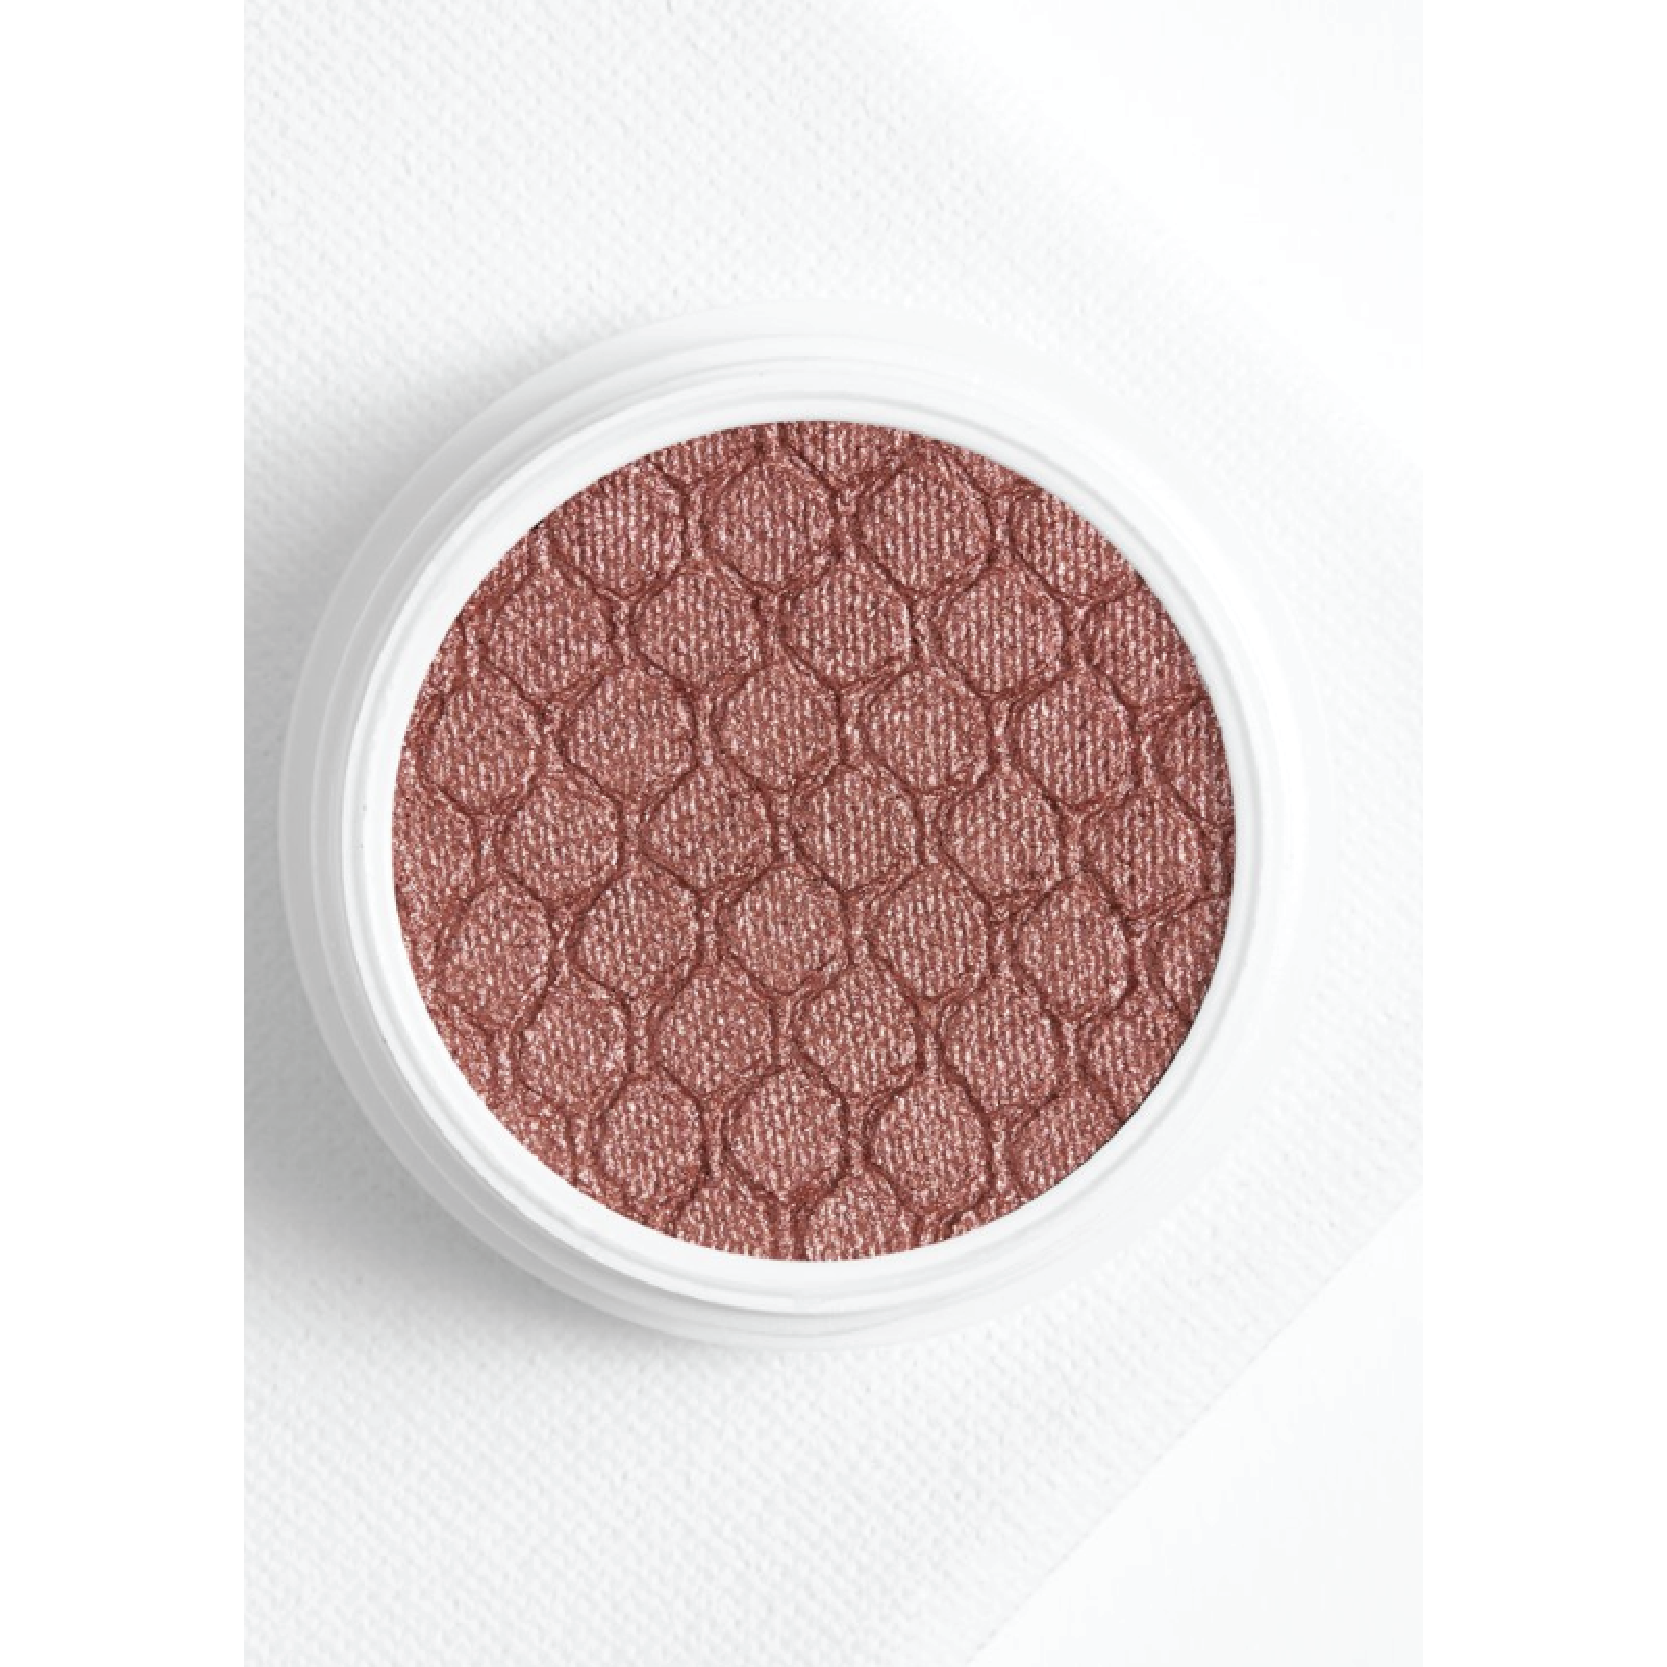 Colourpop Super Shock Shadow - $5 at ColourpopRemember when your parents used to stuff your stocking with candy? Well, this is the adult version.